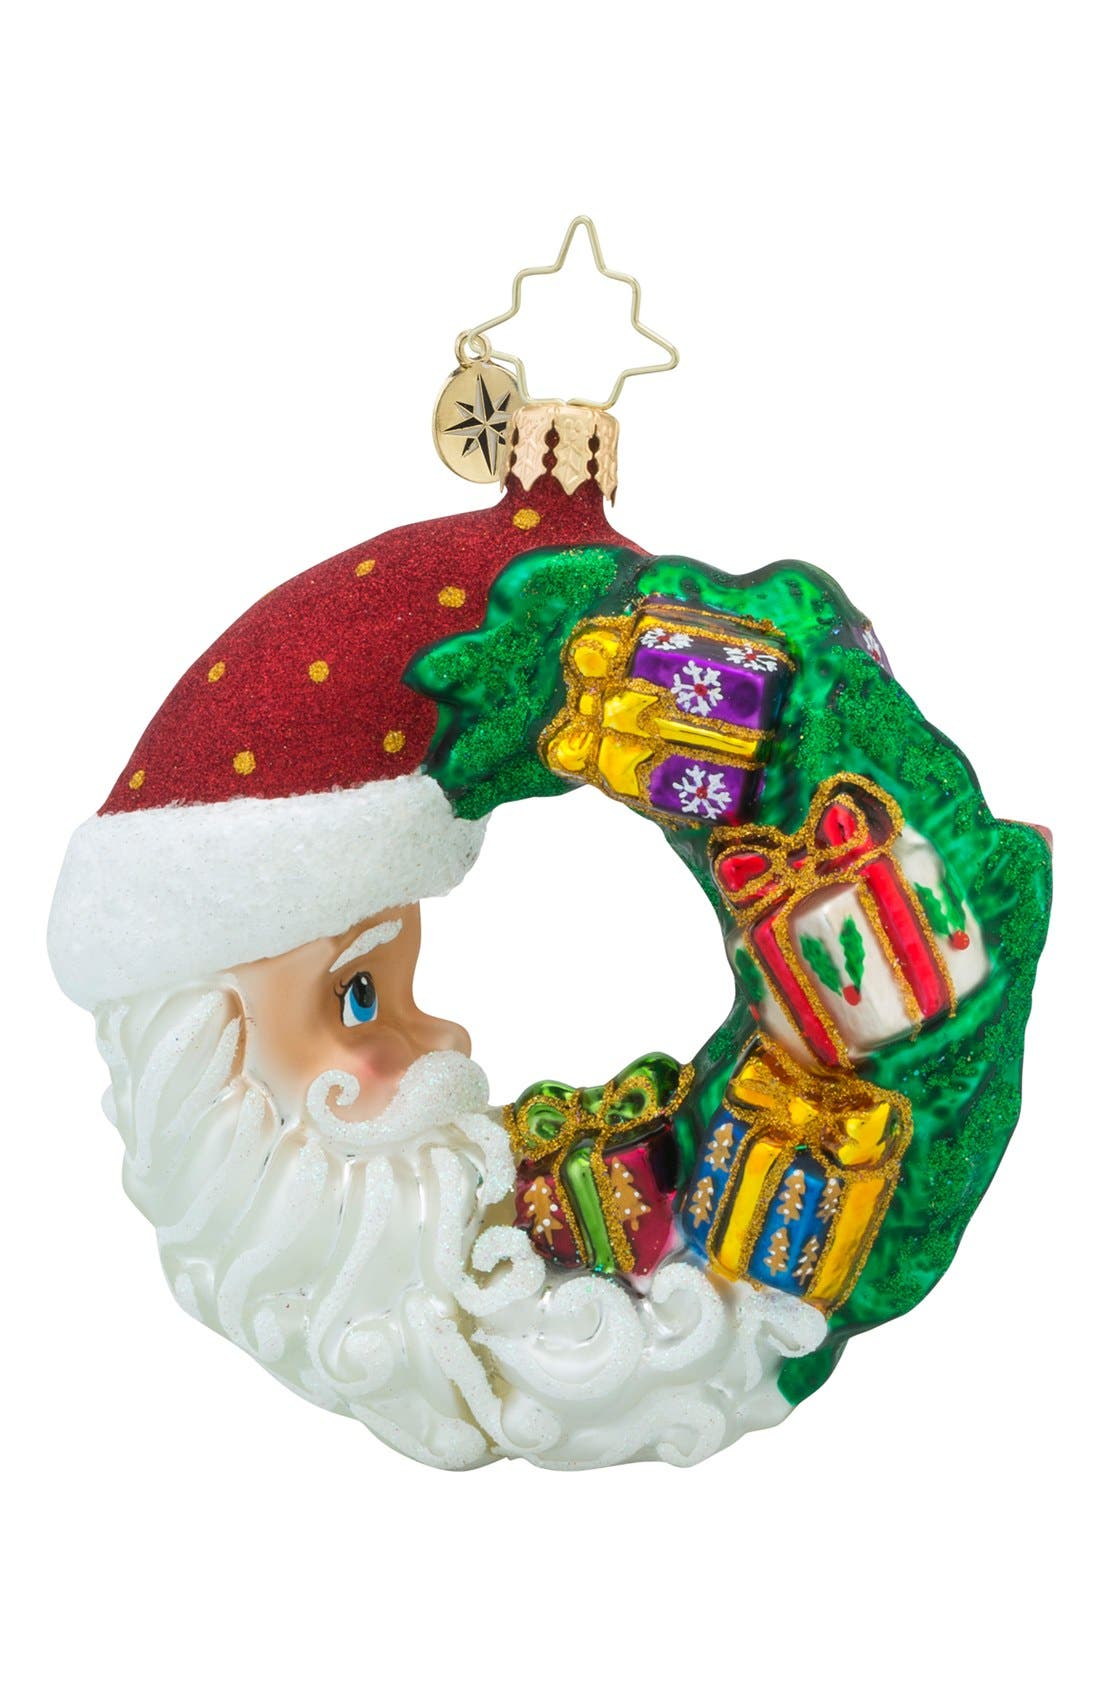 Alternate Image 1 Selected - Christopher Radko 'Crescent Christmas' Santa Ornament